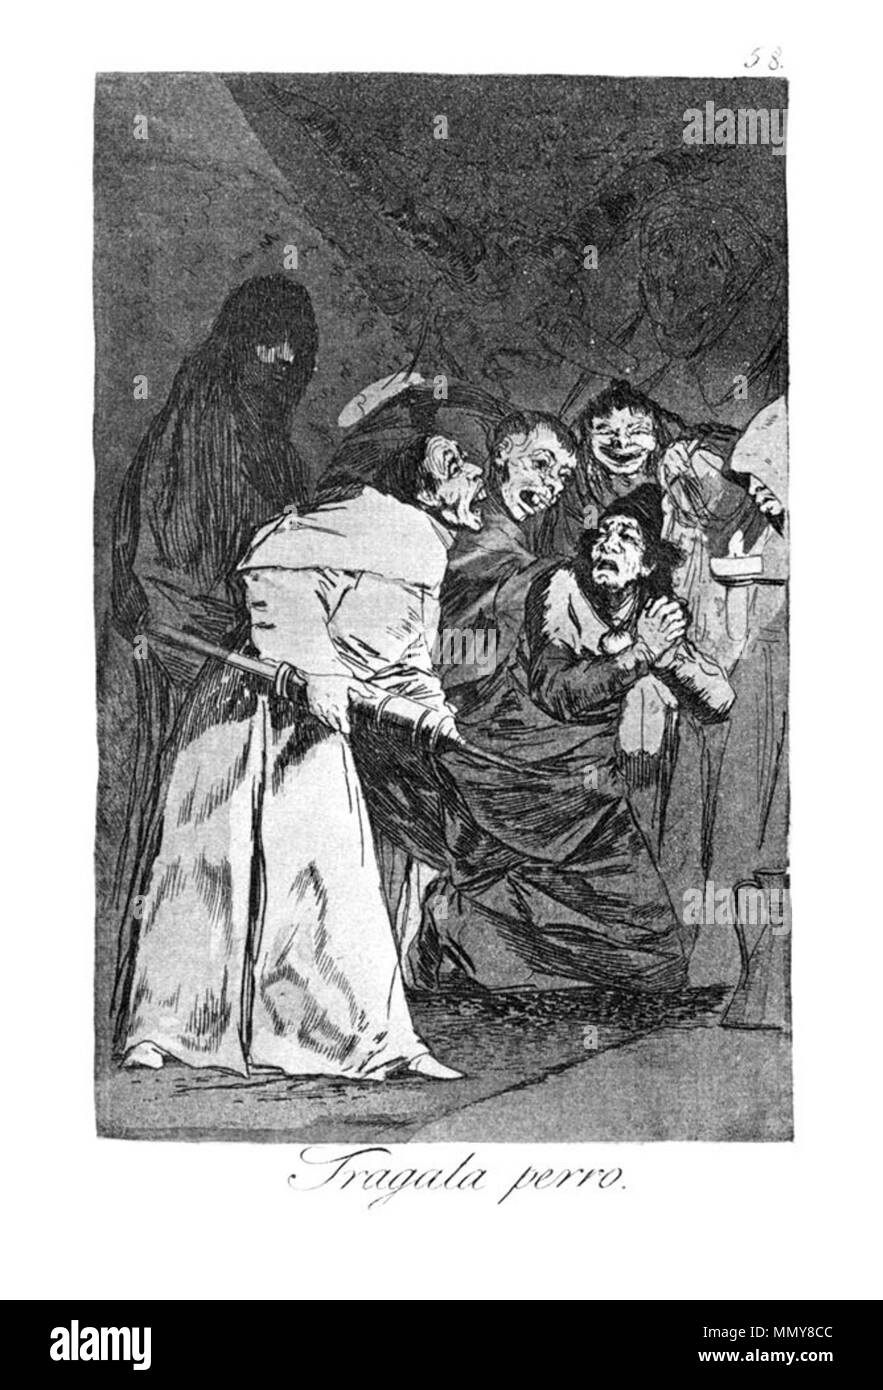 . Los Caprichos is a set of 80 aquatint prints created by Francisco Goya for release in 1799.  . 1799.   Francisco Goya (1746–1828)   Alternative names Francisco Goya Lucientes, Francisco de Goya y Lucientes, Francisco José Goya Lucientes  Description Spanish painter, printmaker, lithographer, engraver and etcher  Date of birth/death 30 March 1746 16 April 1828  Location of birth/death Fuendetodos Bordeaux  Work location Madrid, Zaragoza, Bordeaux  Authority control  : Q5432 VIAF:?54343141 ISNI:?0000 0001 2280 1608 ULAN:?500118936 LCCN:?n79003363 NLA:?36545788 WorldCat Goya - Caprichos (58 - Stock Image